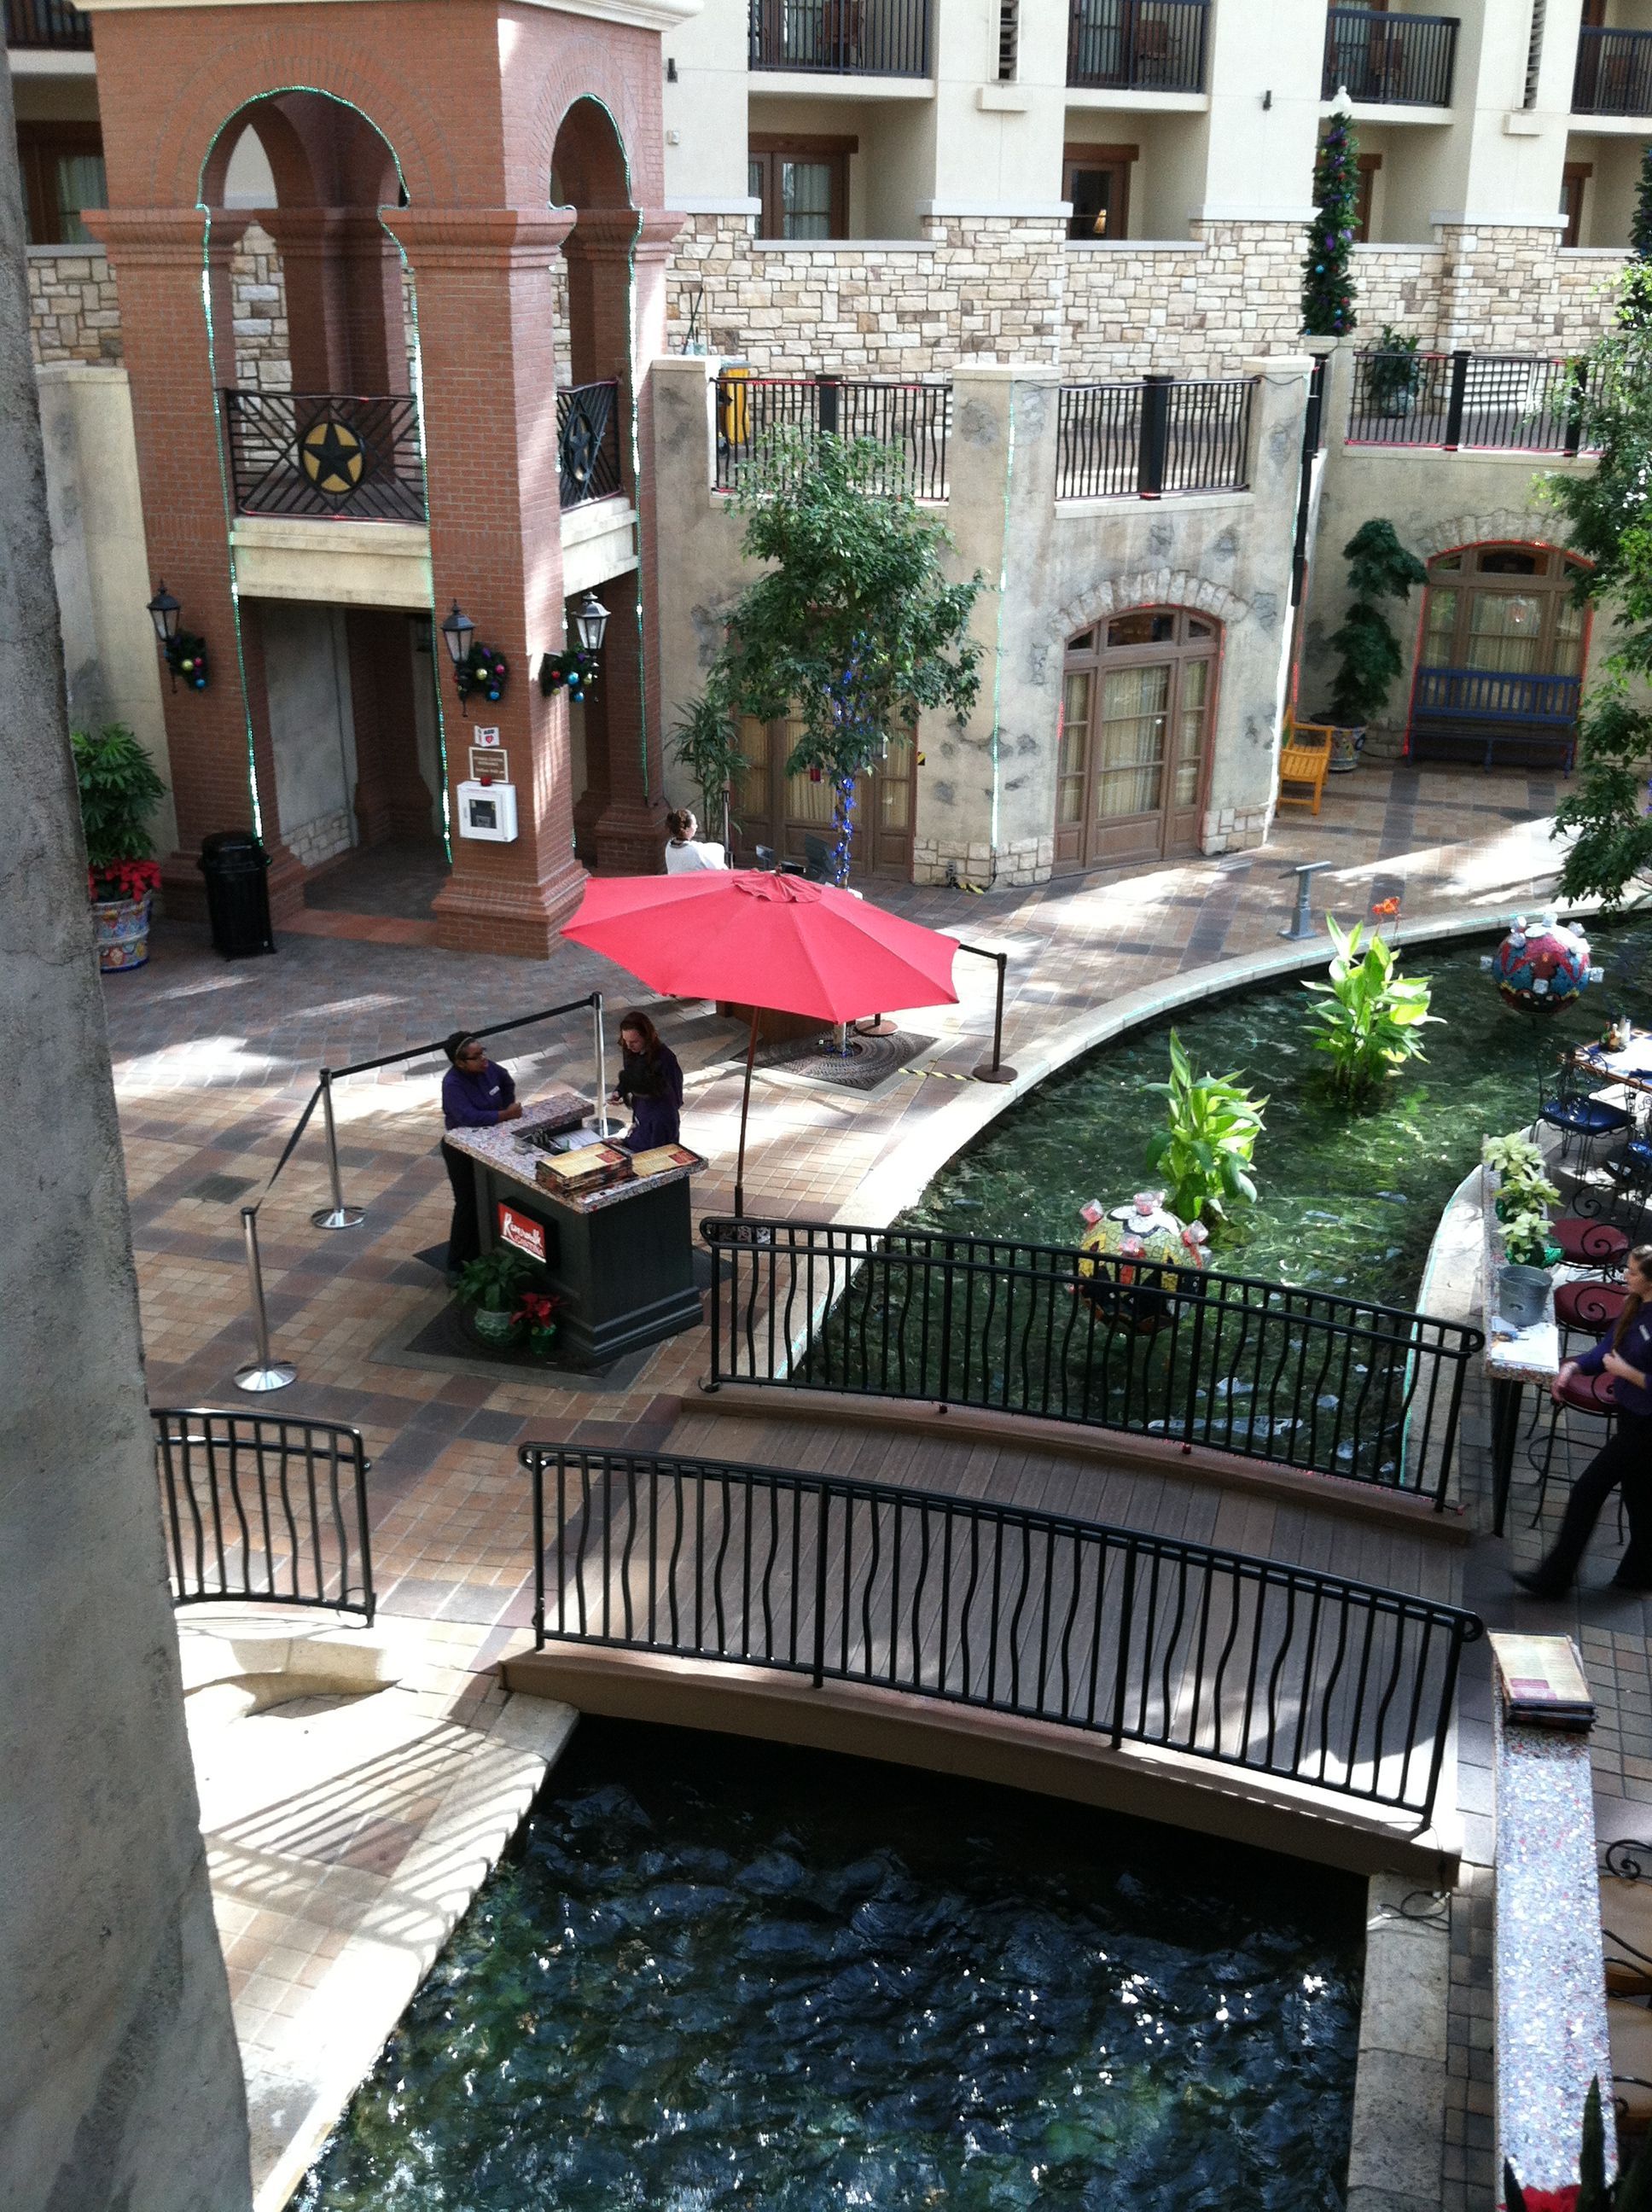 Lord Hotel In Grapevine Tx